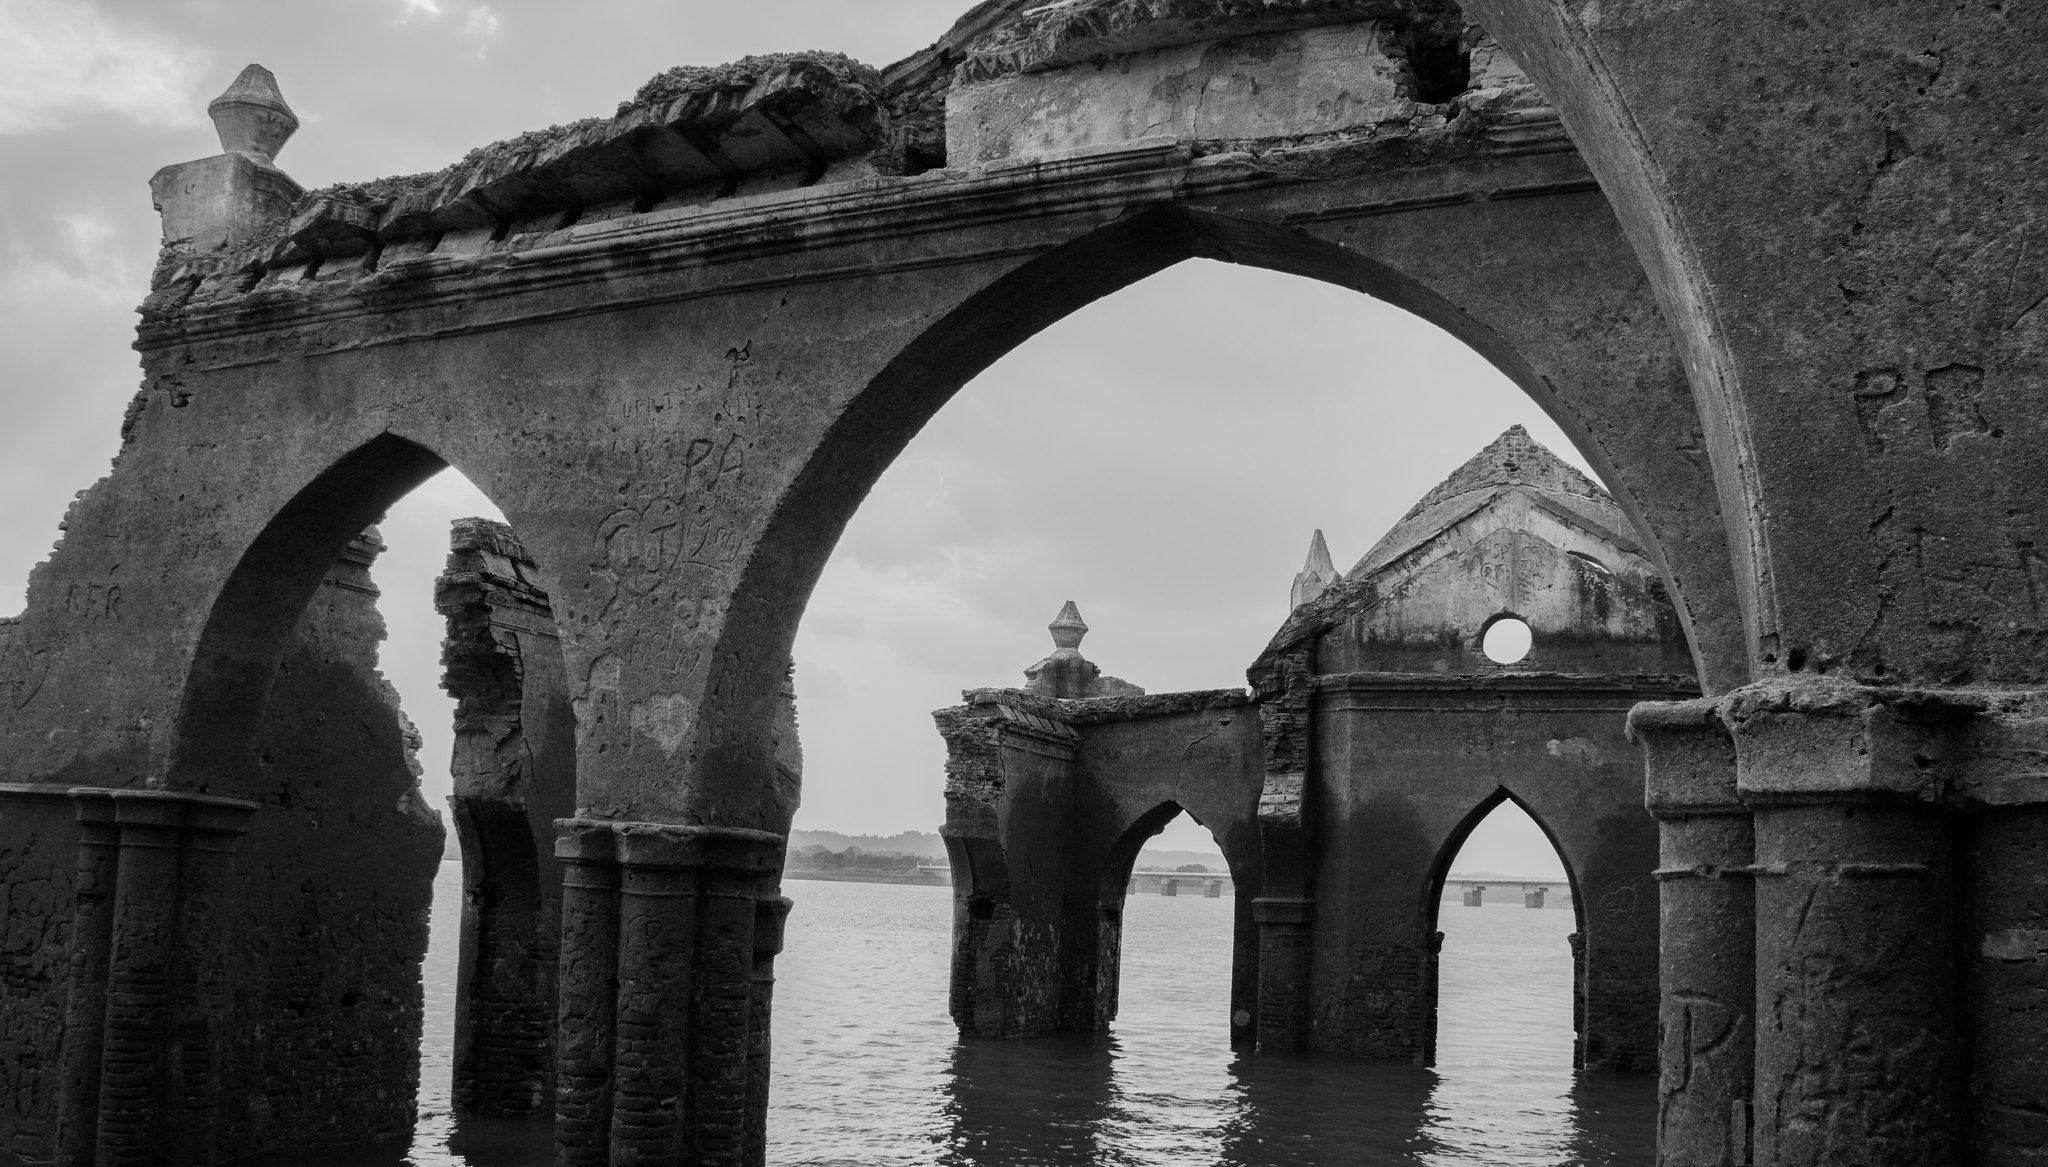 The Ruined Remains of a Floating Church in India